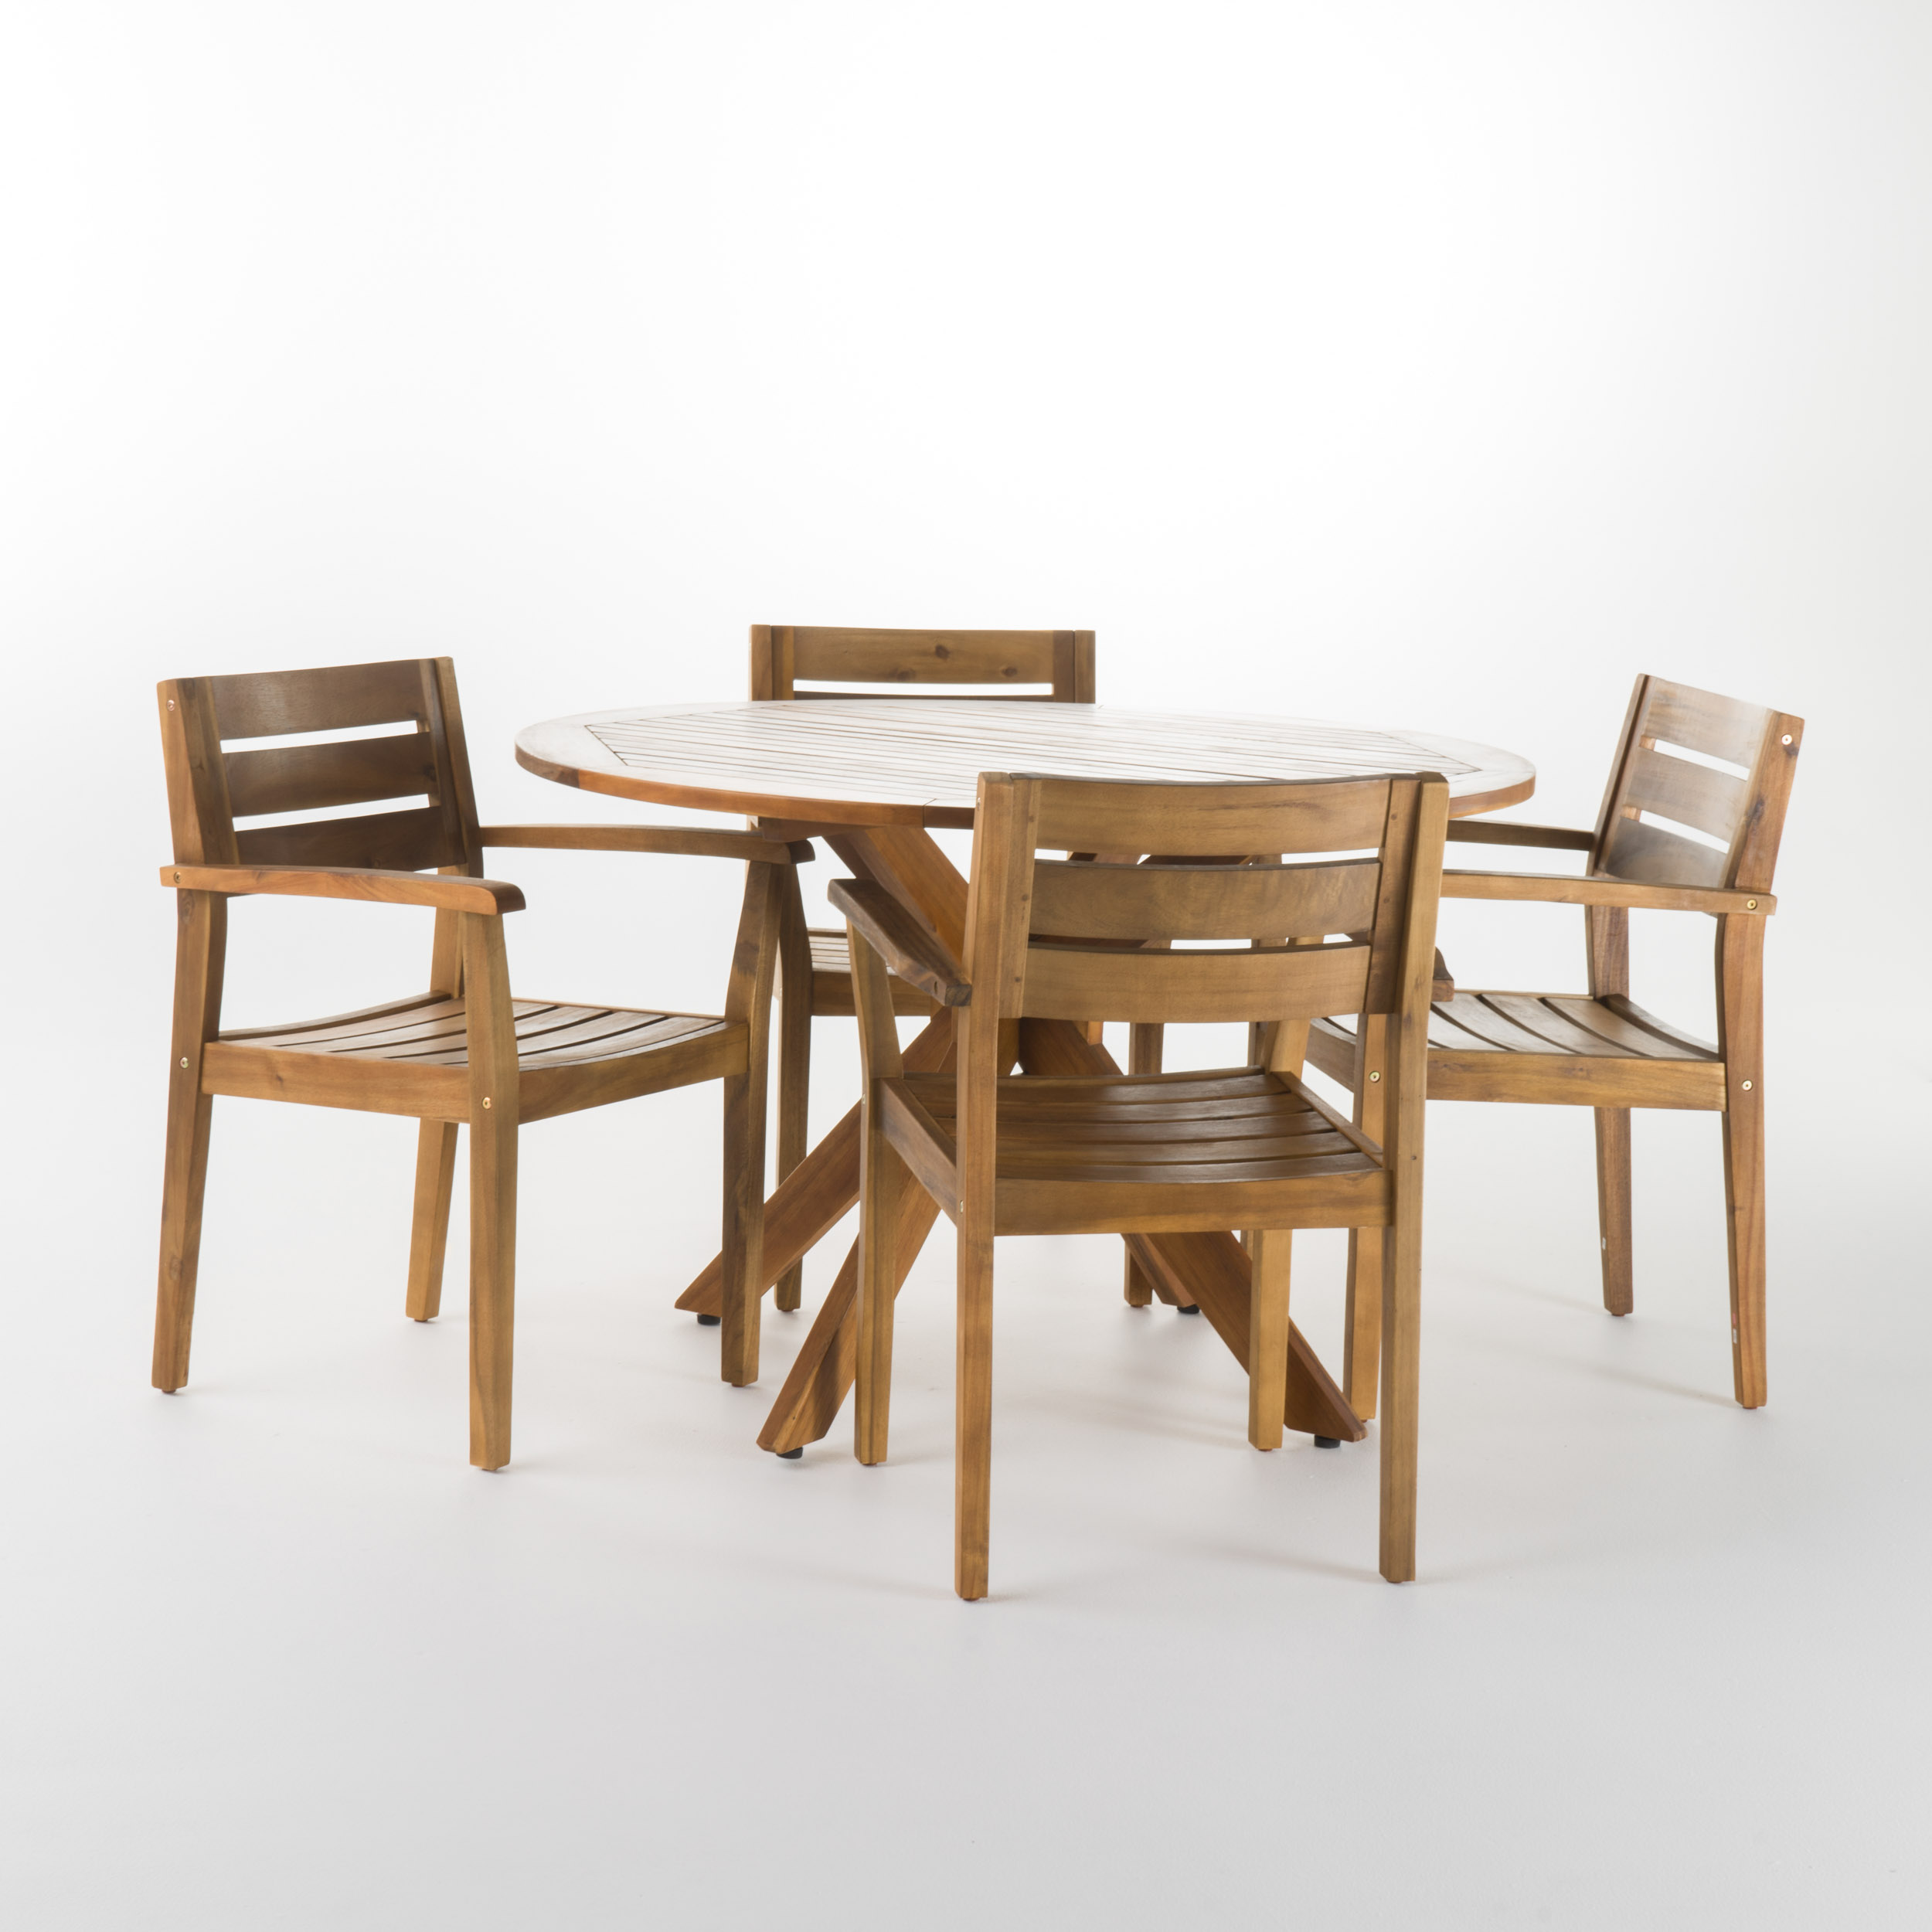 Stanford Outdoor 5 Piece Acaica Wood Round Dining Set, Teak Finish